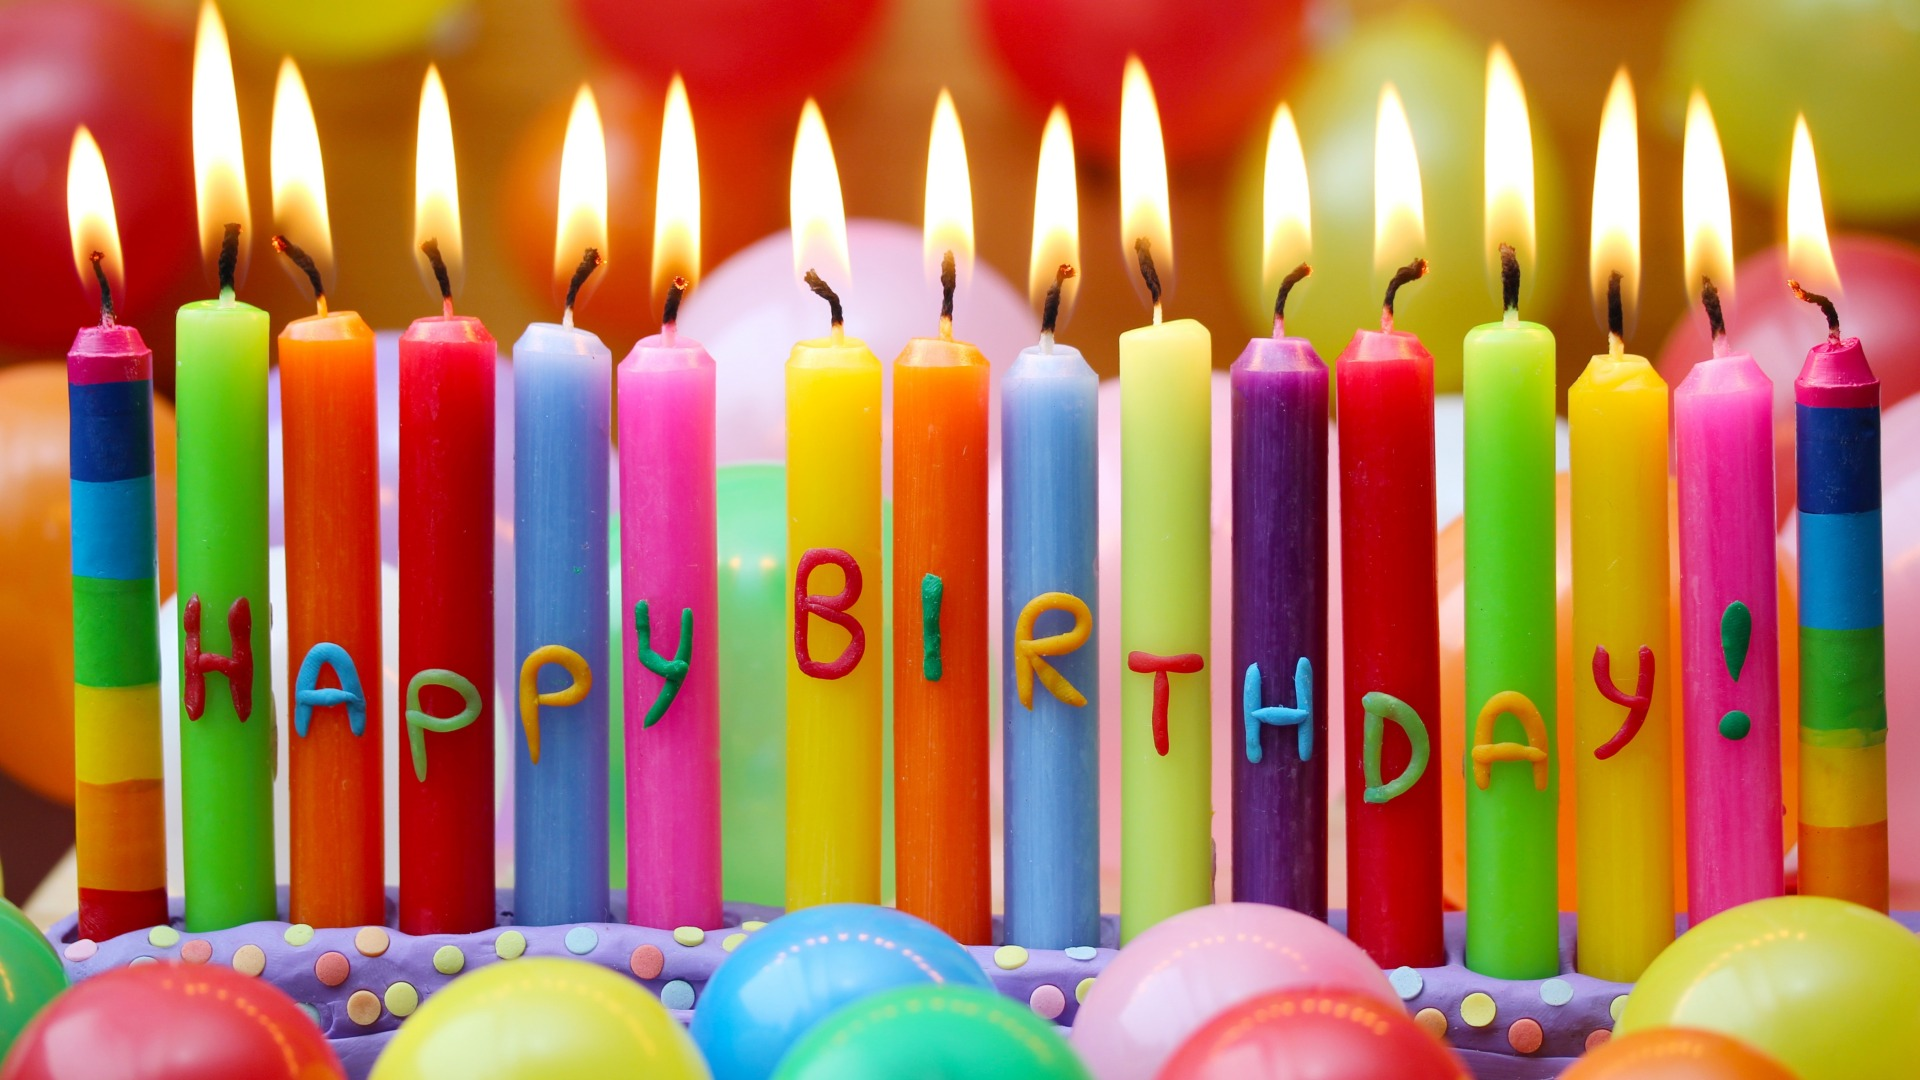 high quality birthday images ; Birthday-Candles-HD-Wallpaper